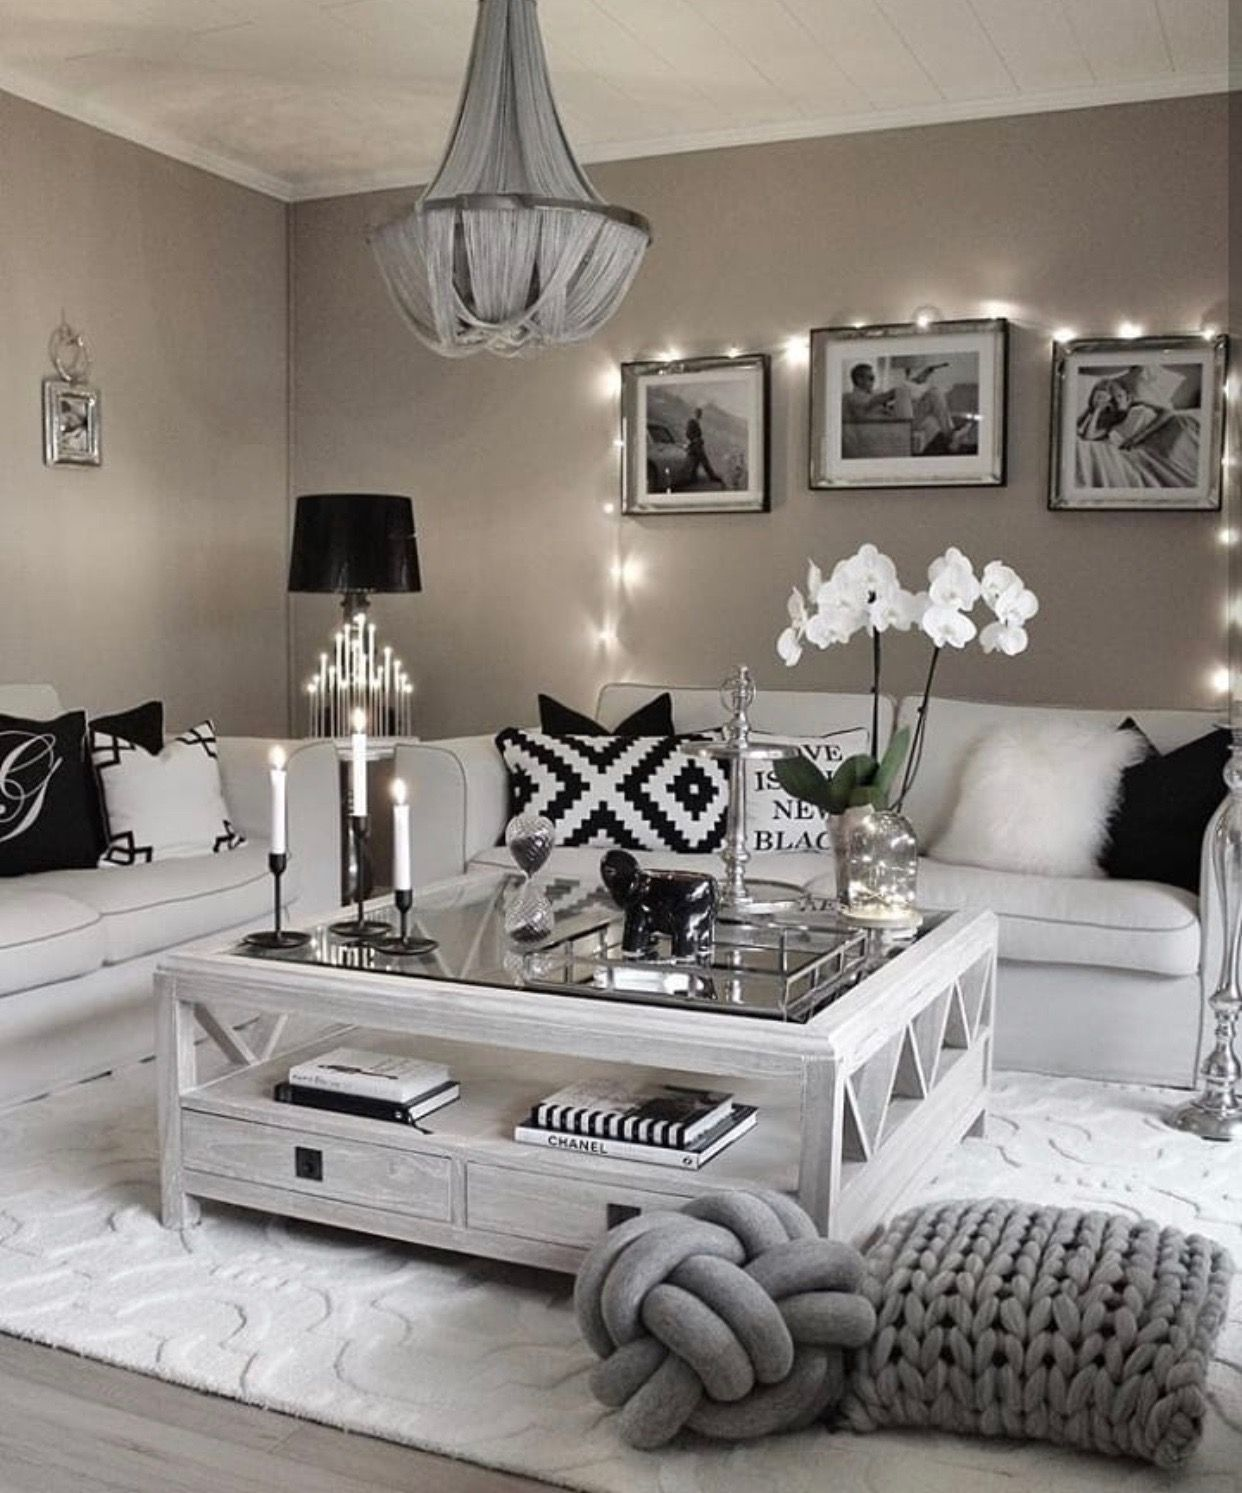 Photo of Render image- Creative coffee table decorations help you decorate living room …